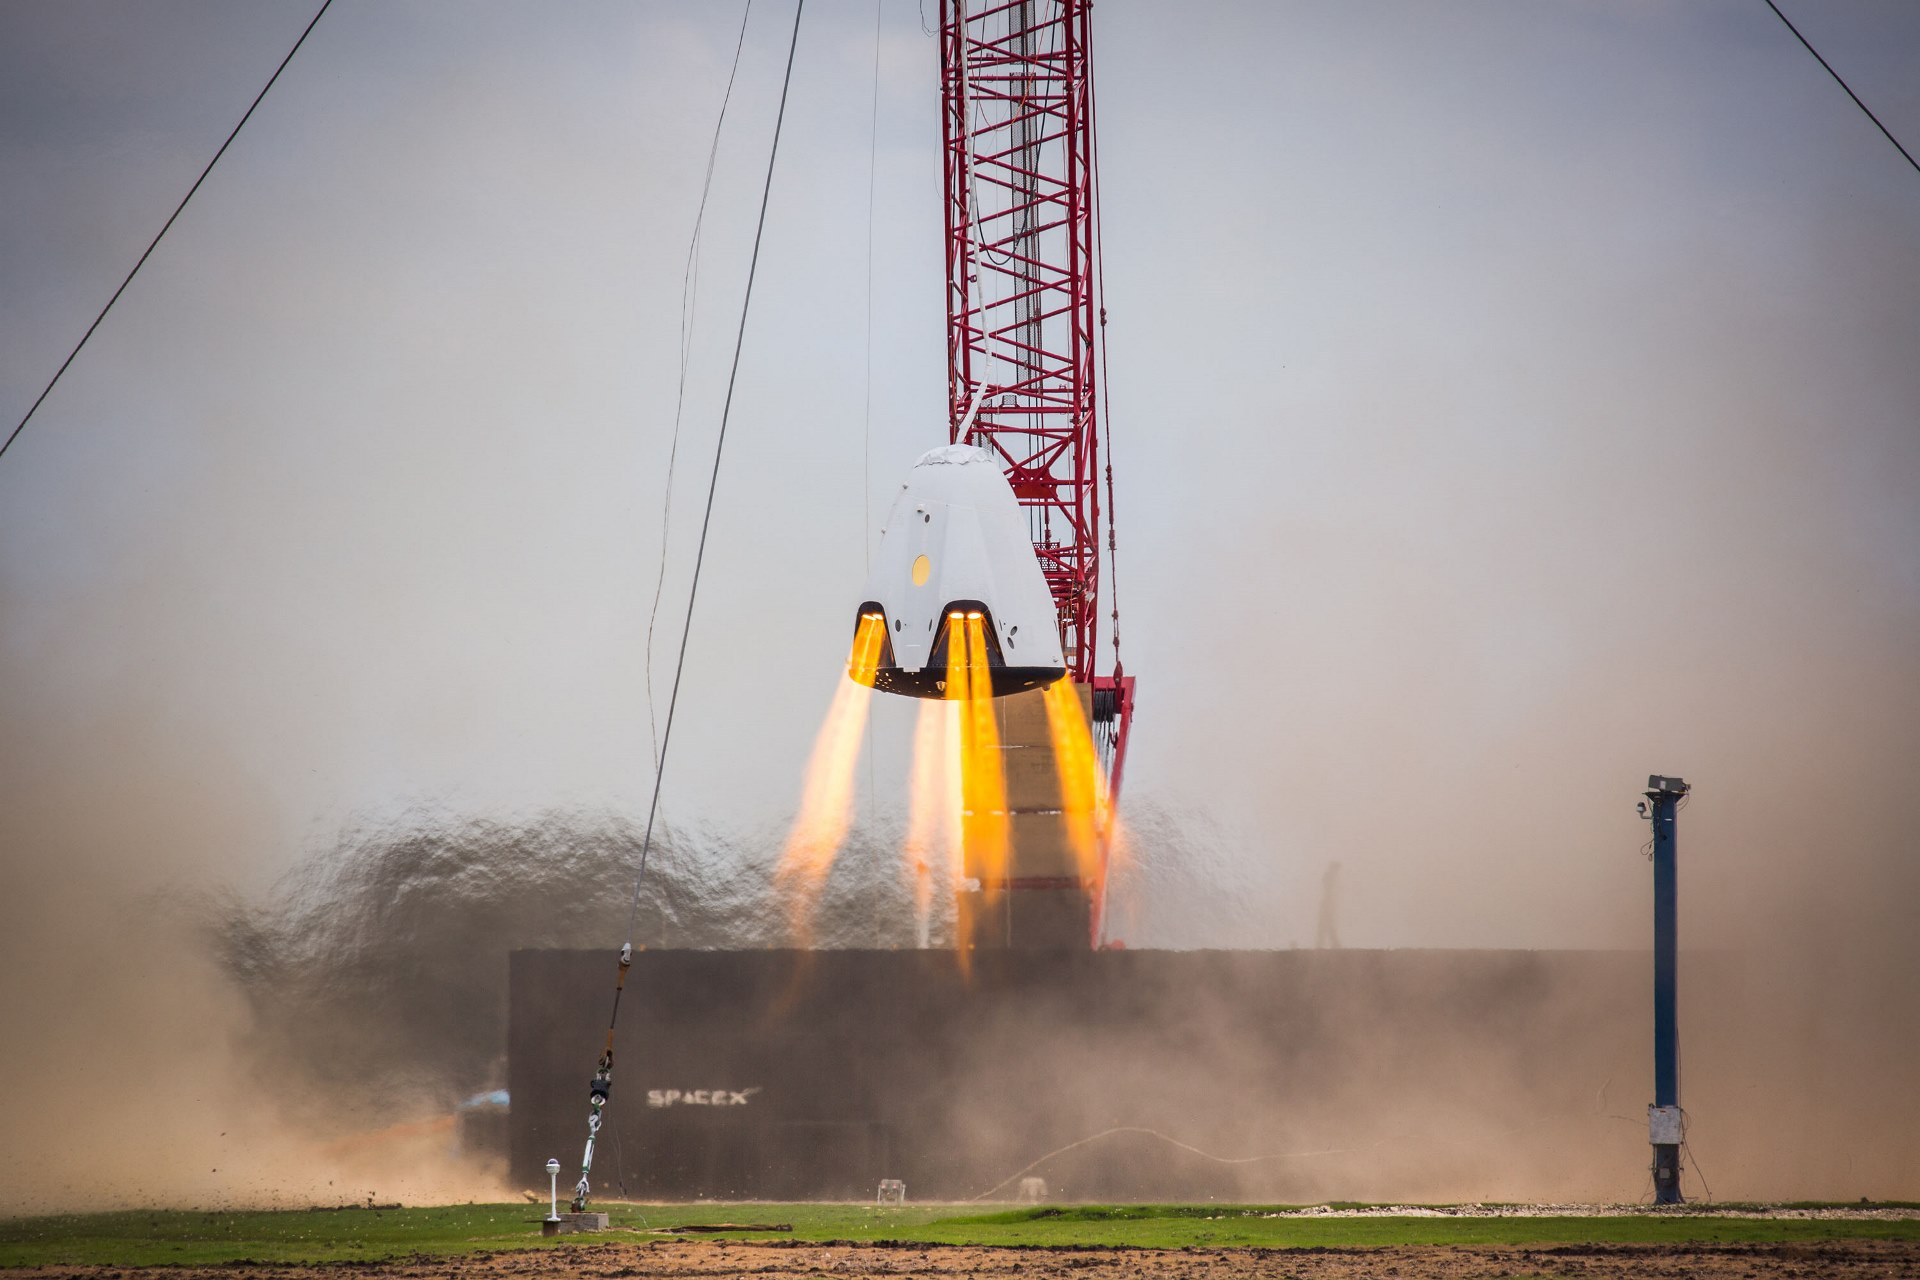 en5-spacexs-first-steps-in-conquering-mars_14